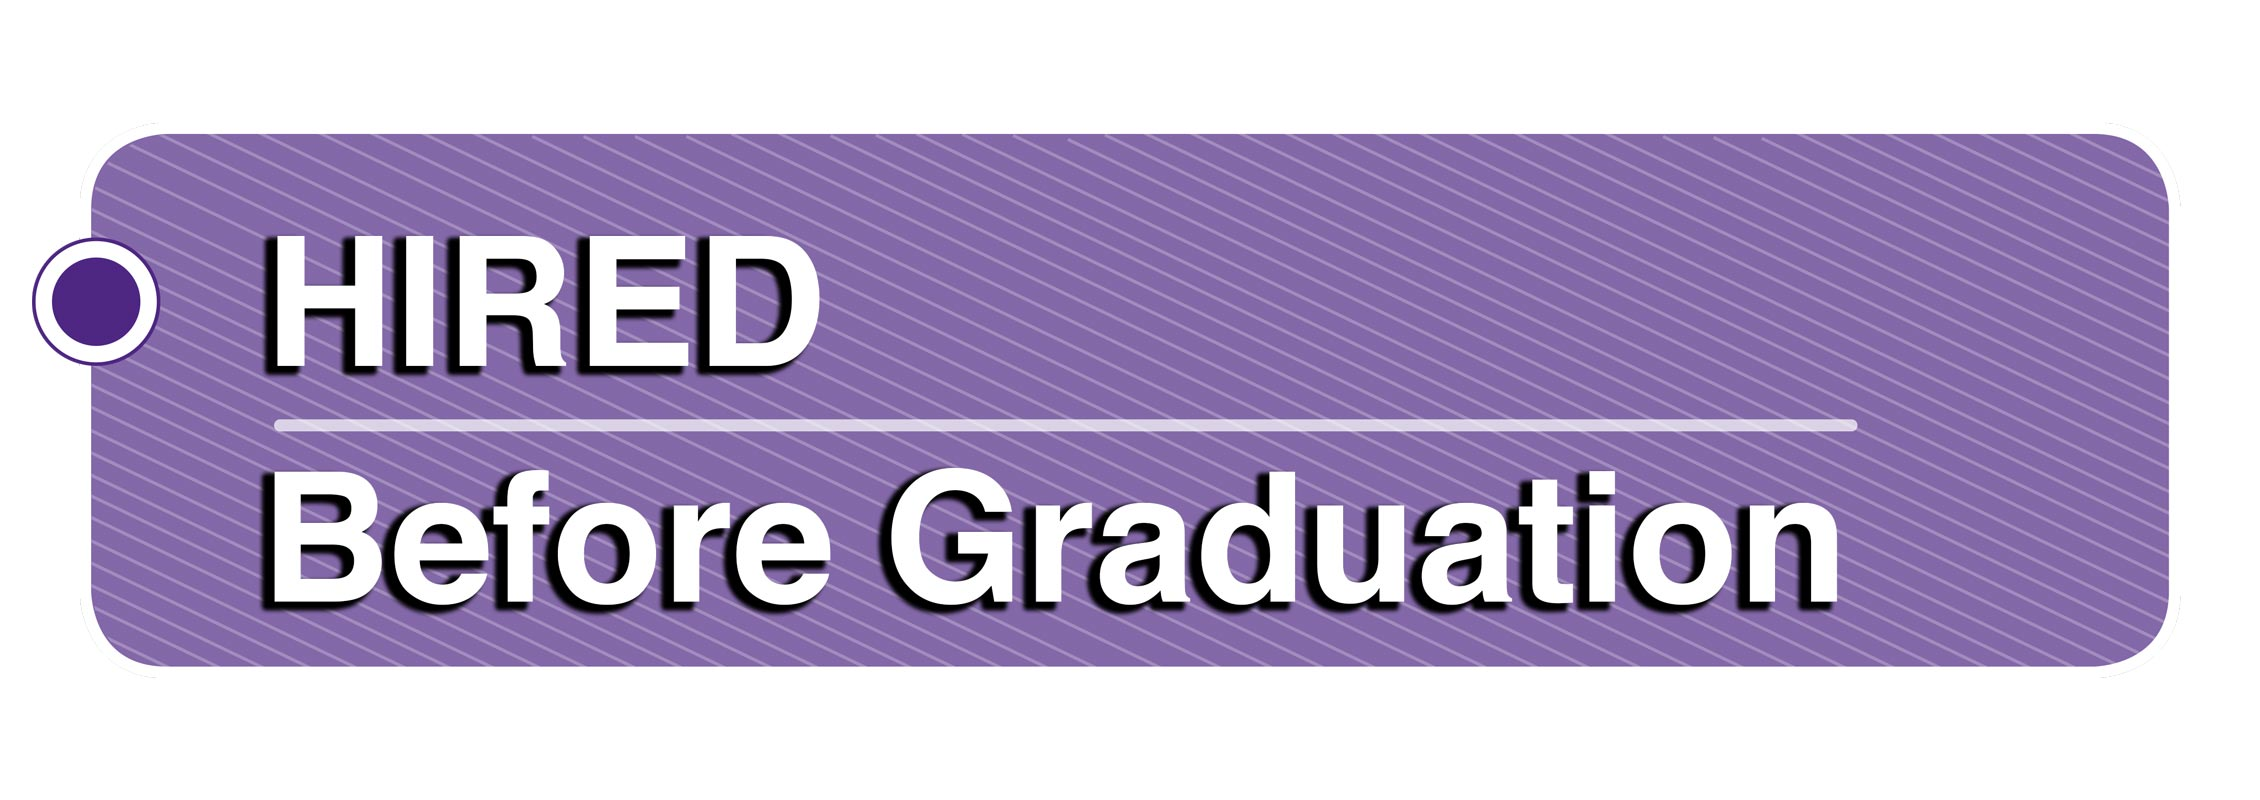 Hired before graduation image